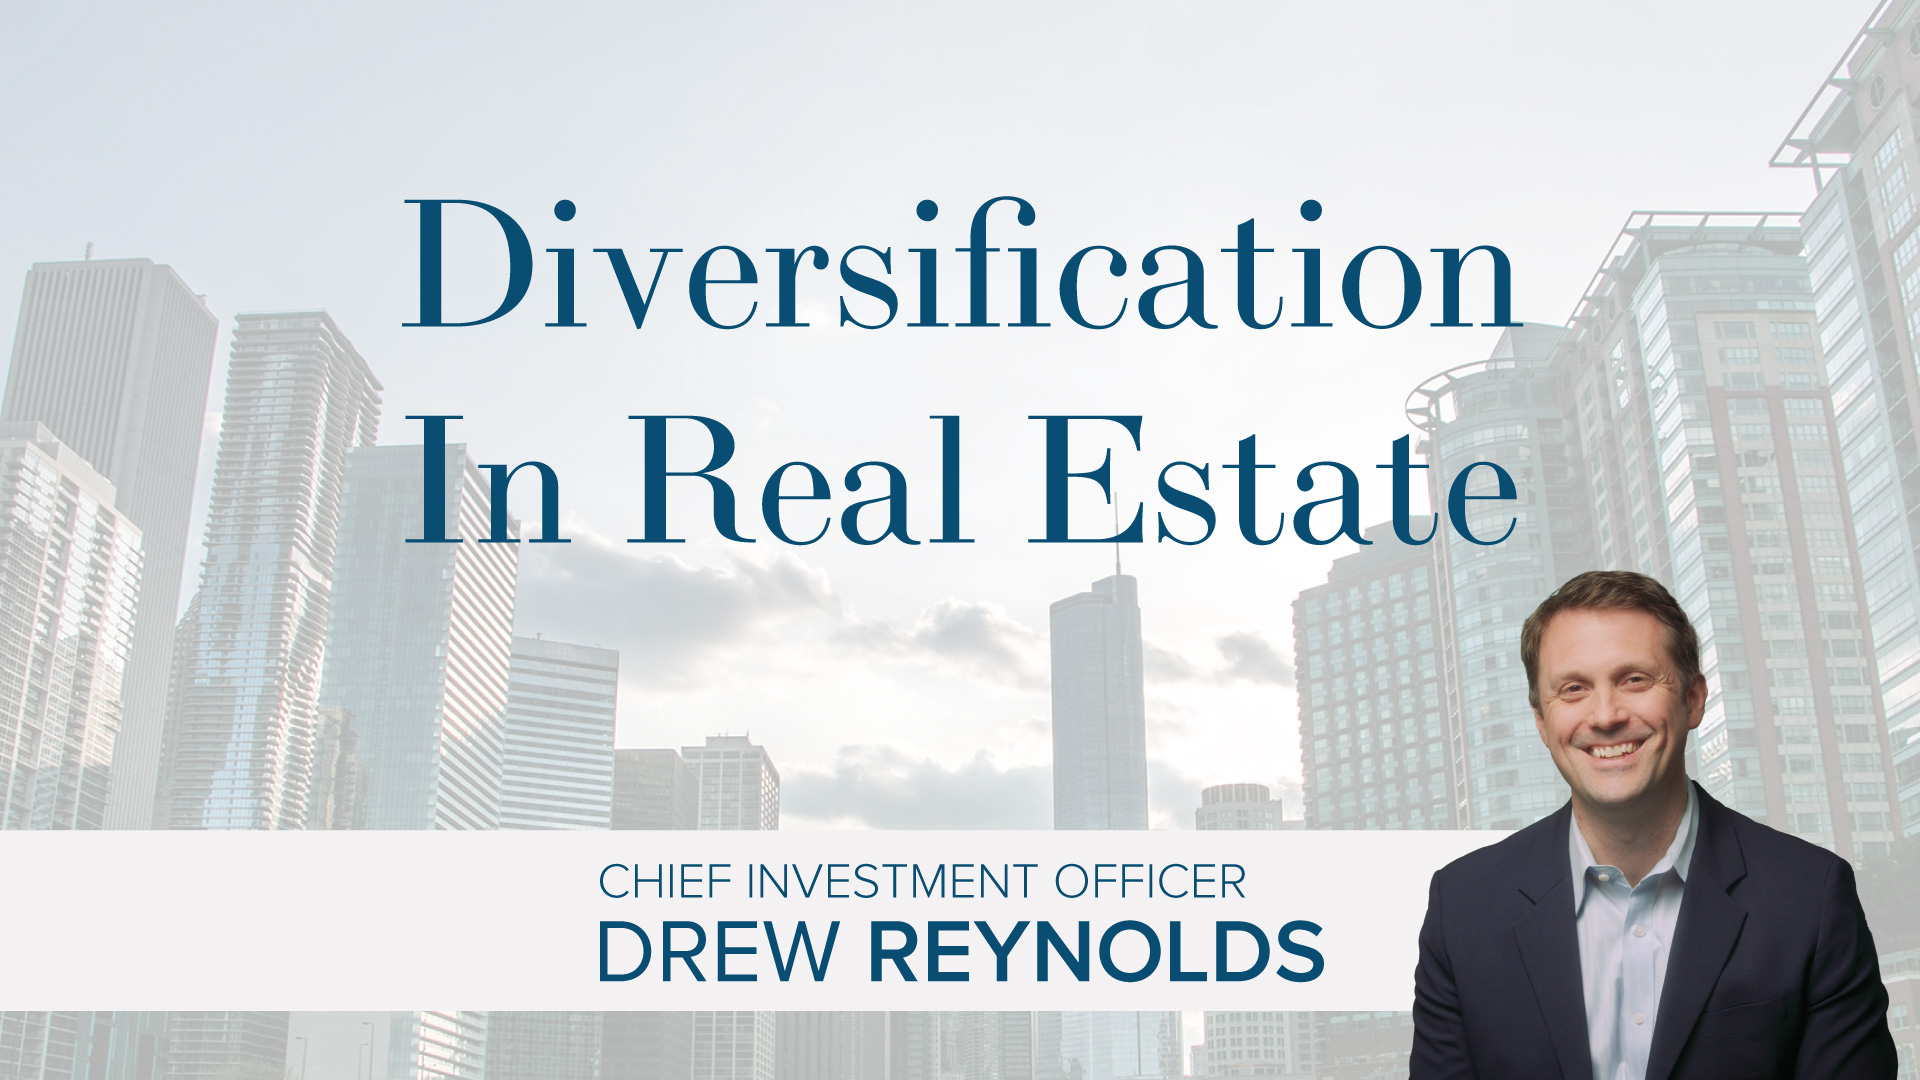 09 Diversification in Real Estate